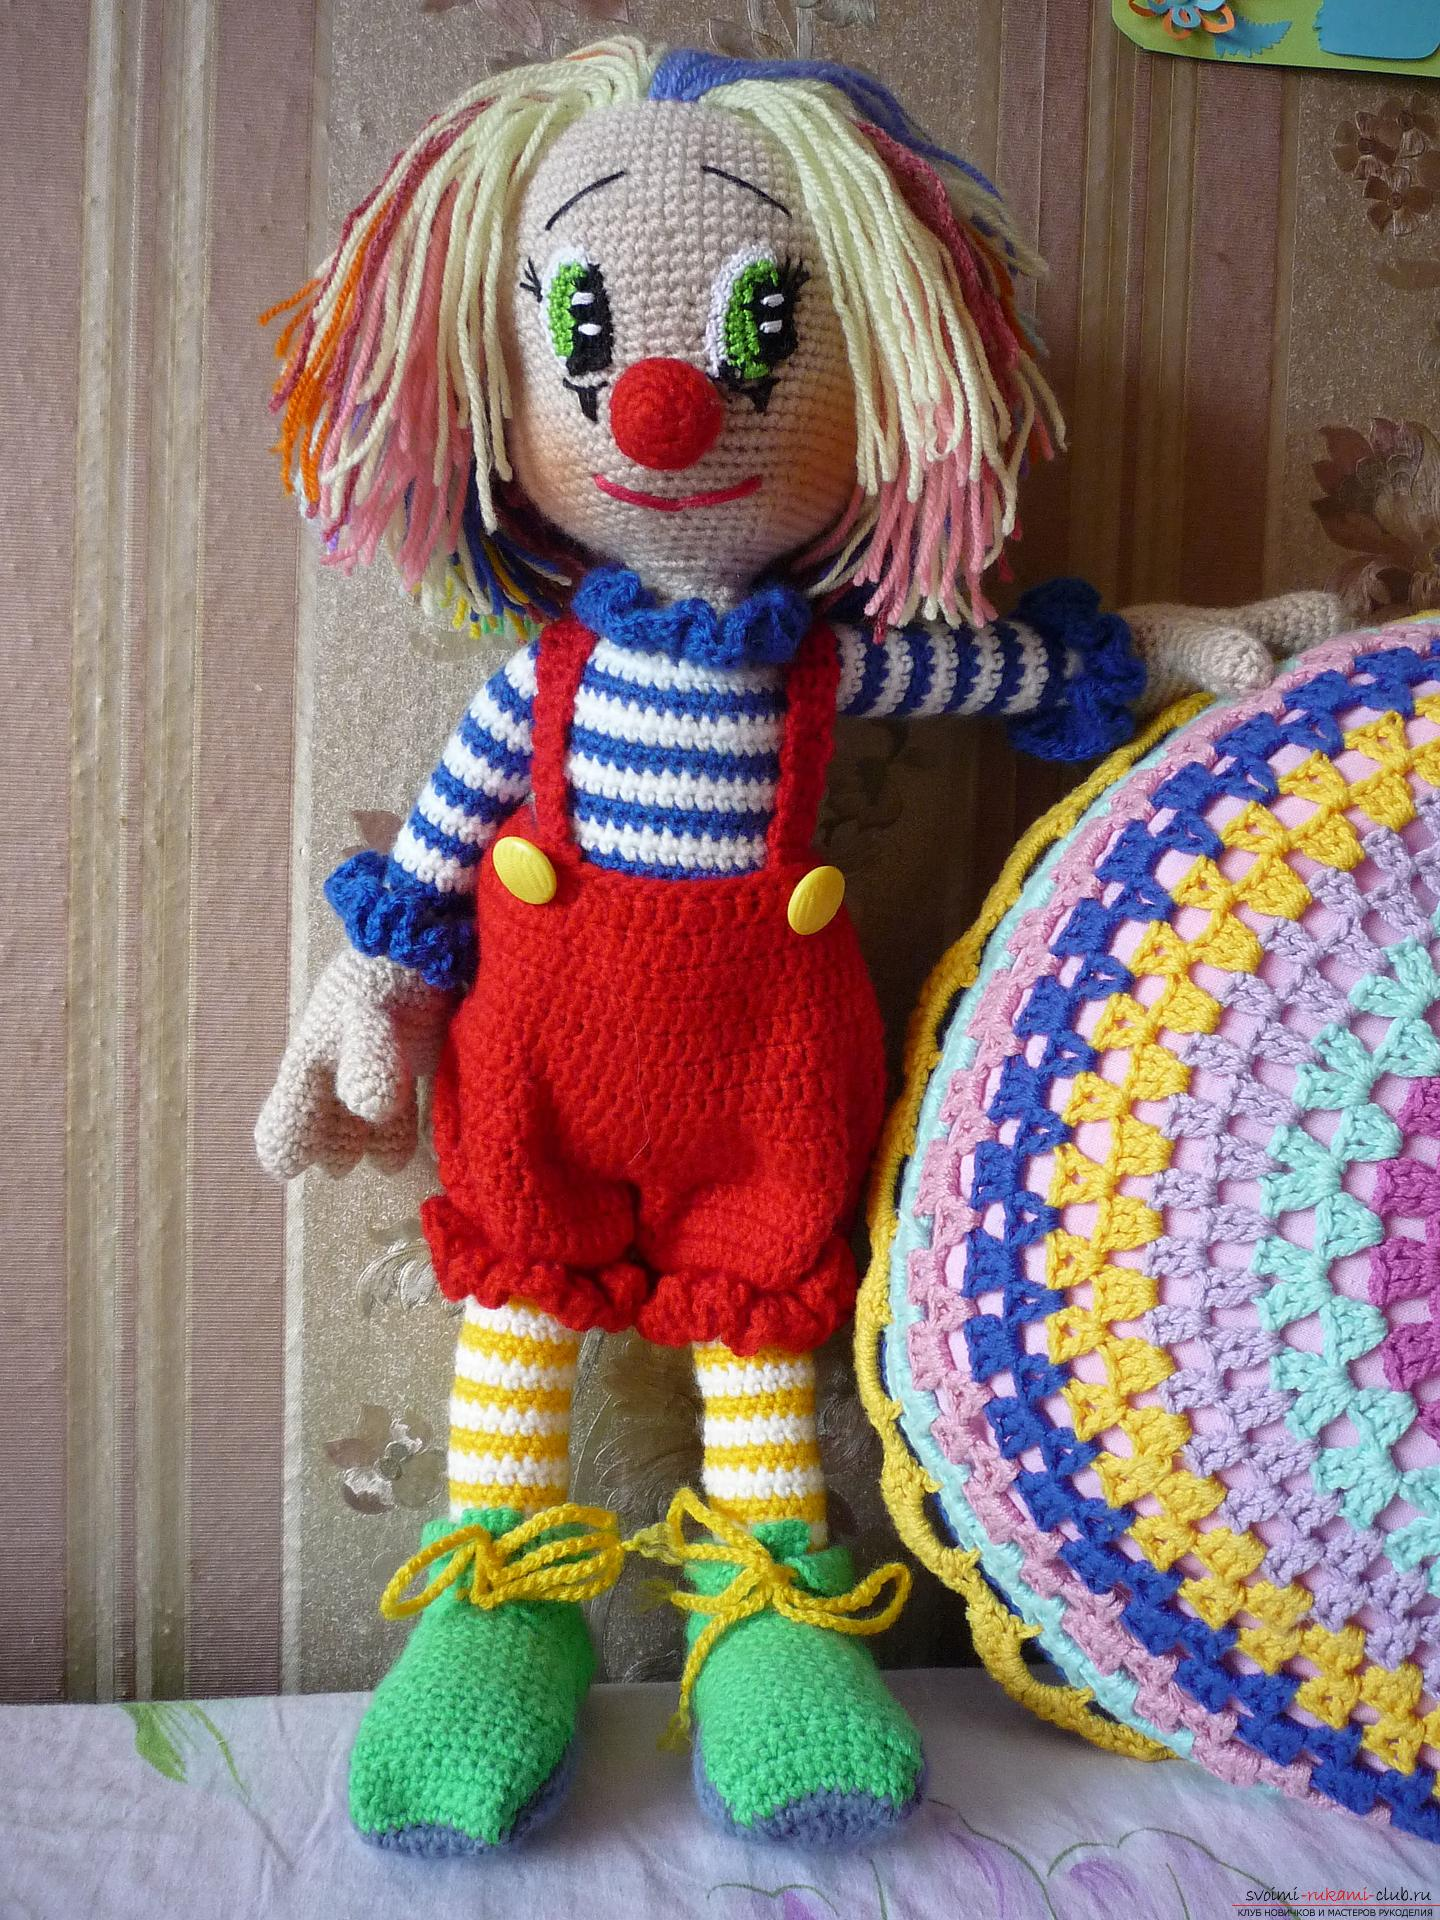 Detailed pictures of a clown toy crocheted from multi-colored yarn. Photo №1